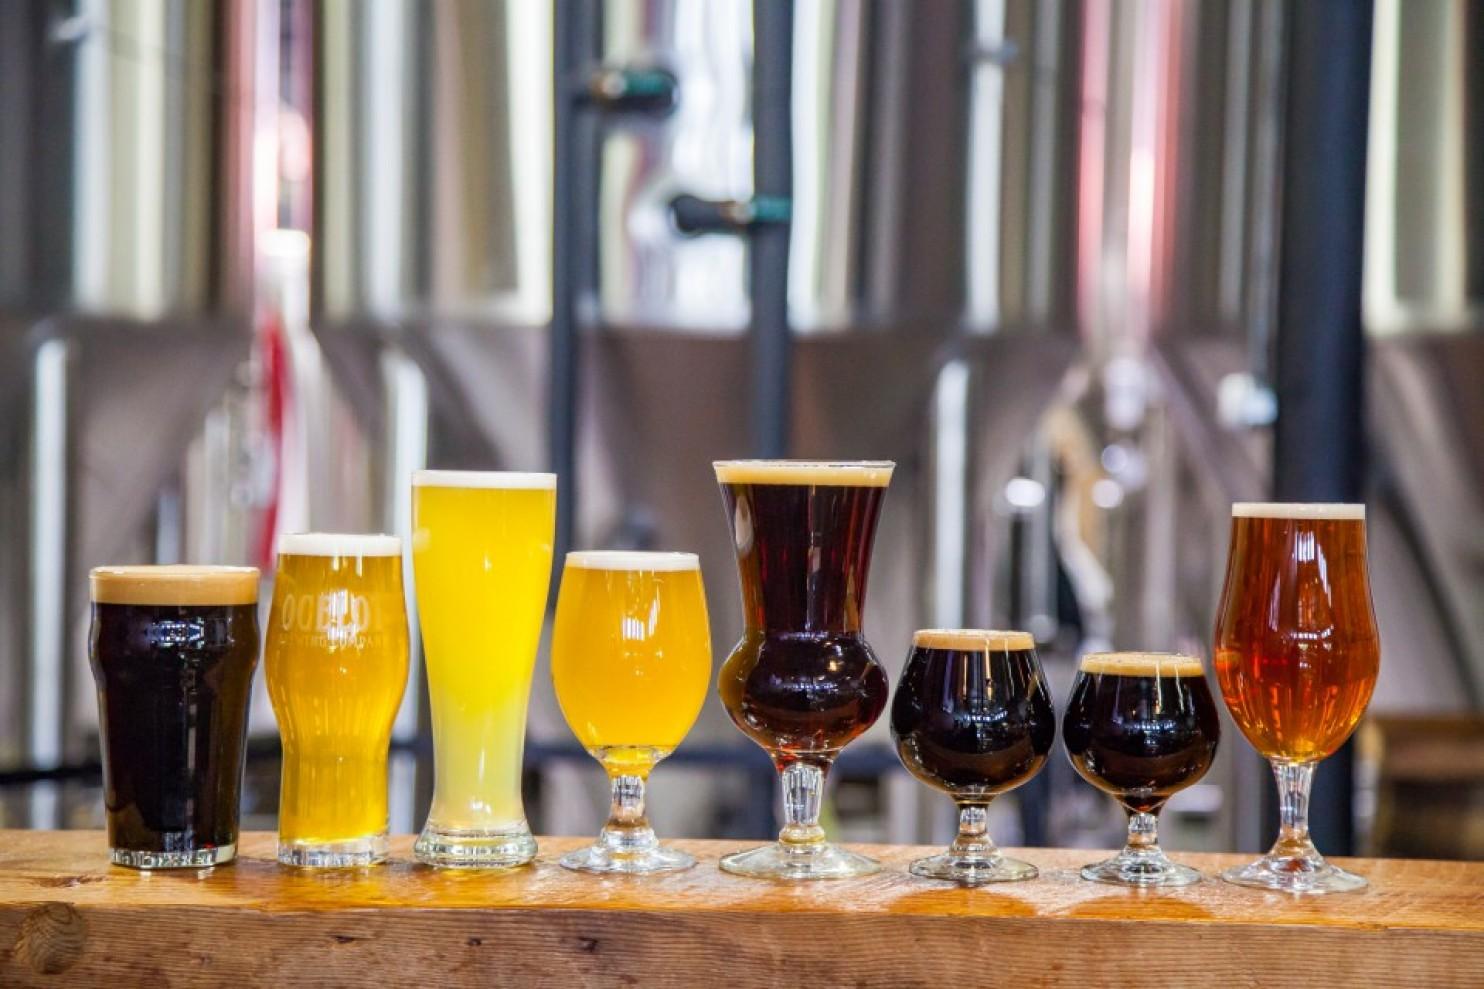 Local beer is easy to find: The definitive guide to D.C.'s best breweries